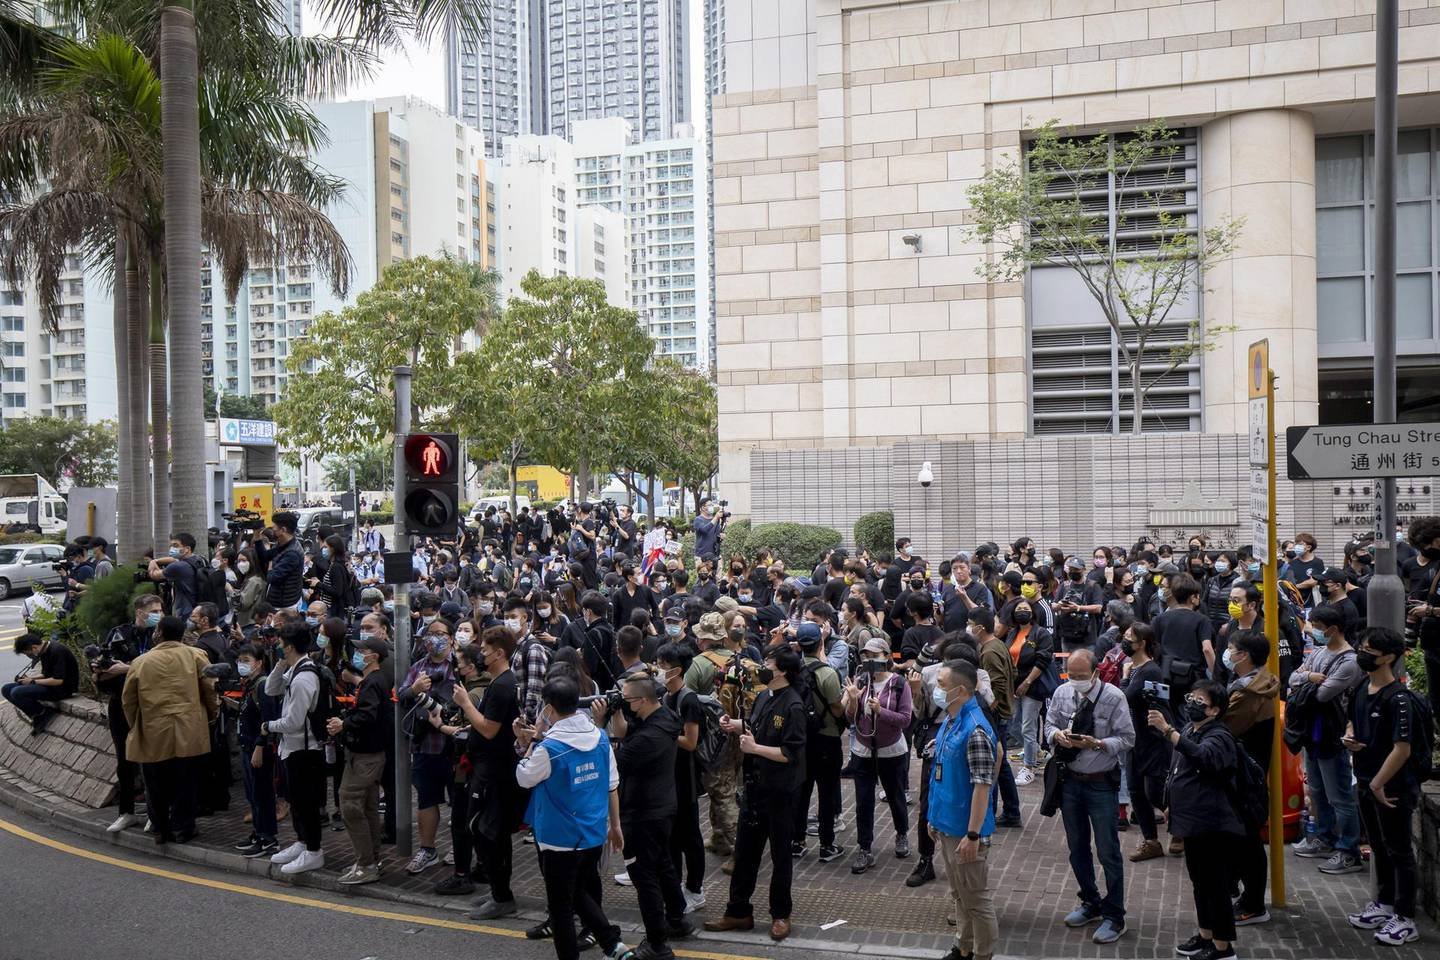 People gather outside the West Kowloon Magistrates' Courts during a hearing for 47 opposition activists charged with violating the city's national security law in Hong Kong, China, on Monday, March 1, 2021. Defiant Hong Kong protesters risked arrest outside a local court in the biggest demonstration in months, as dozens of the city's most prominent pro-democracy activists were jailed on subversion charges and authorities in Beijing moved to limit the opposition's role in future elections. Photographer: Paul Yeung/Bloomberg